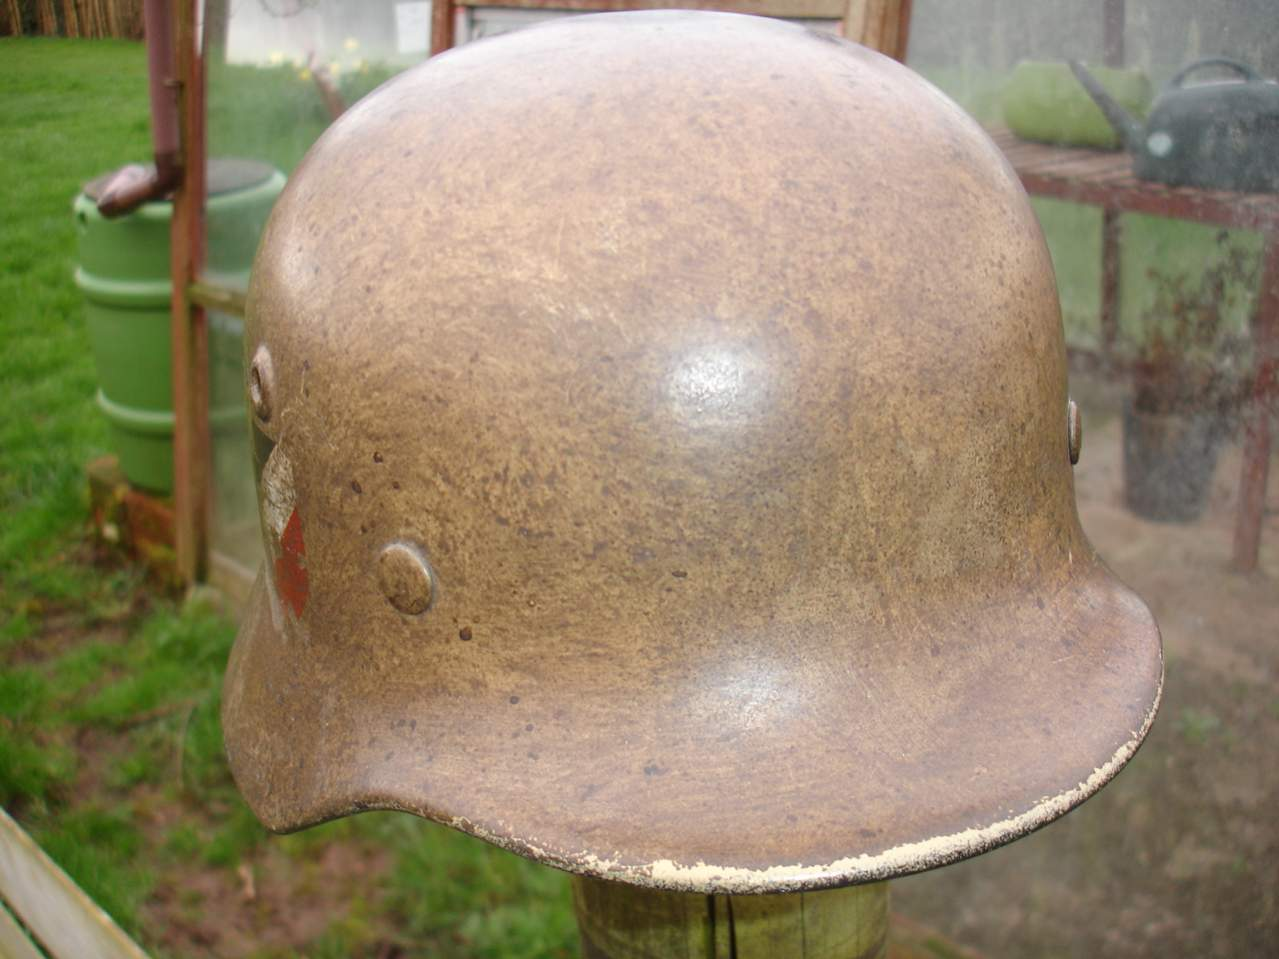 M40 DD Heer WW2 German helmet Sudfront tropical